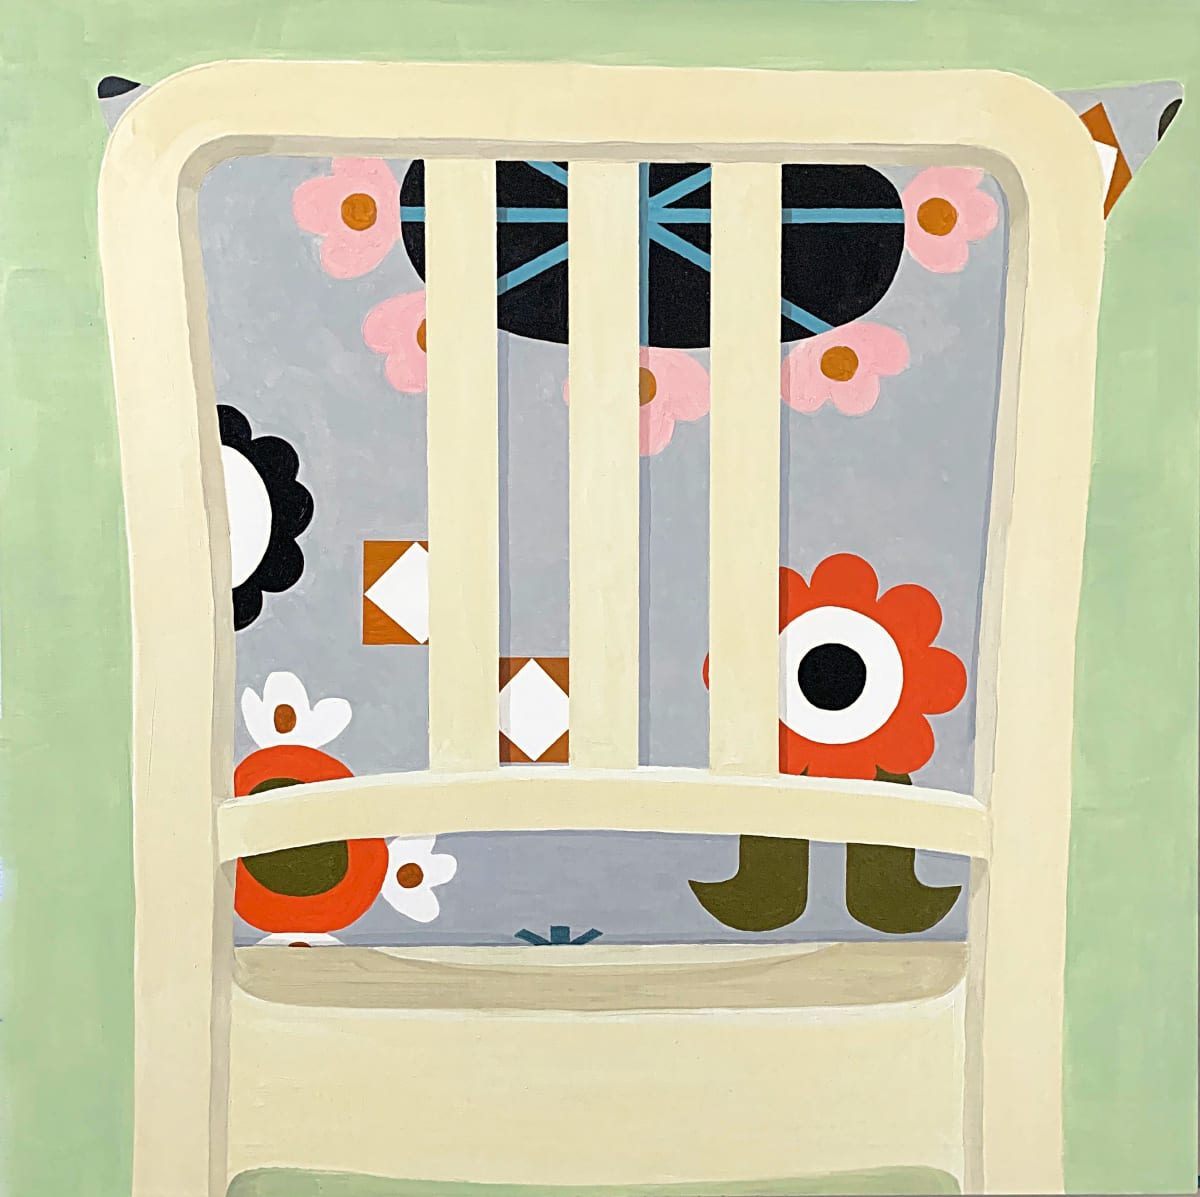 painting of a chair with cushion